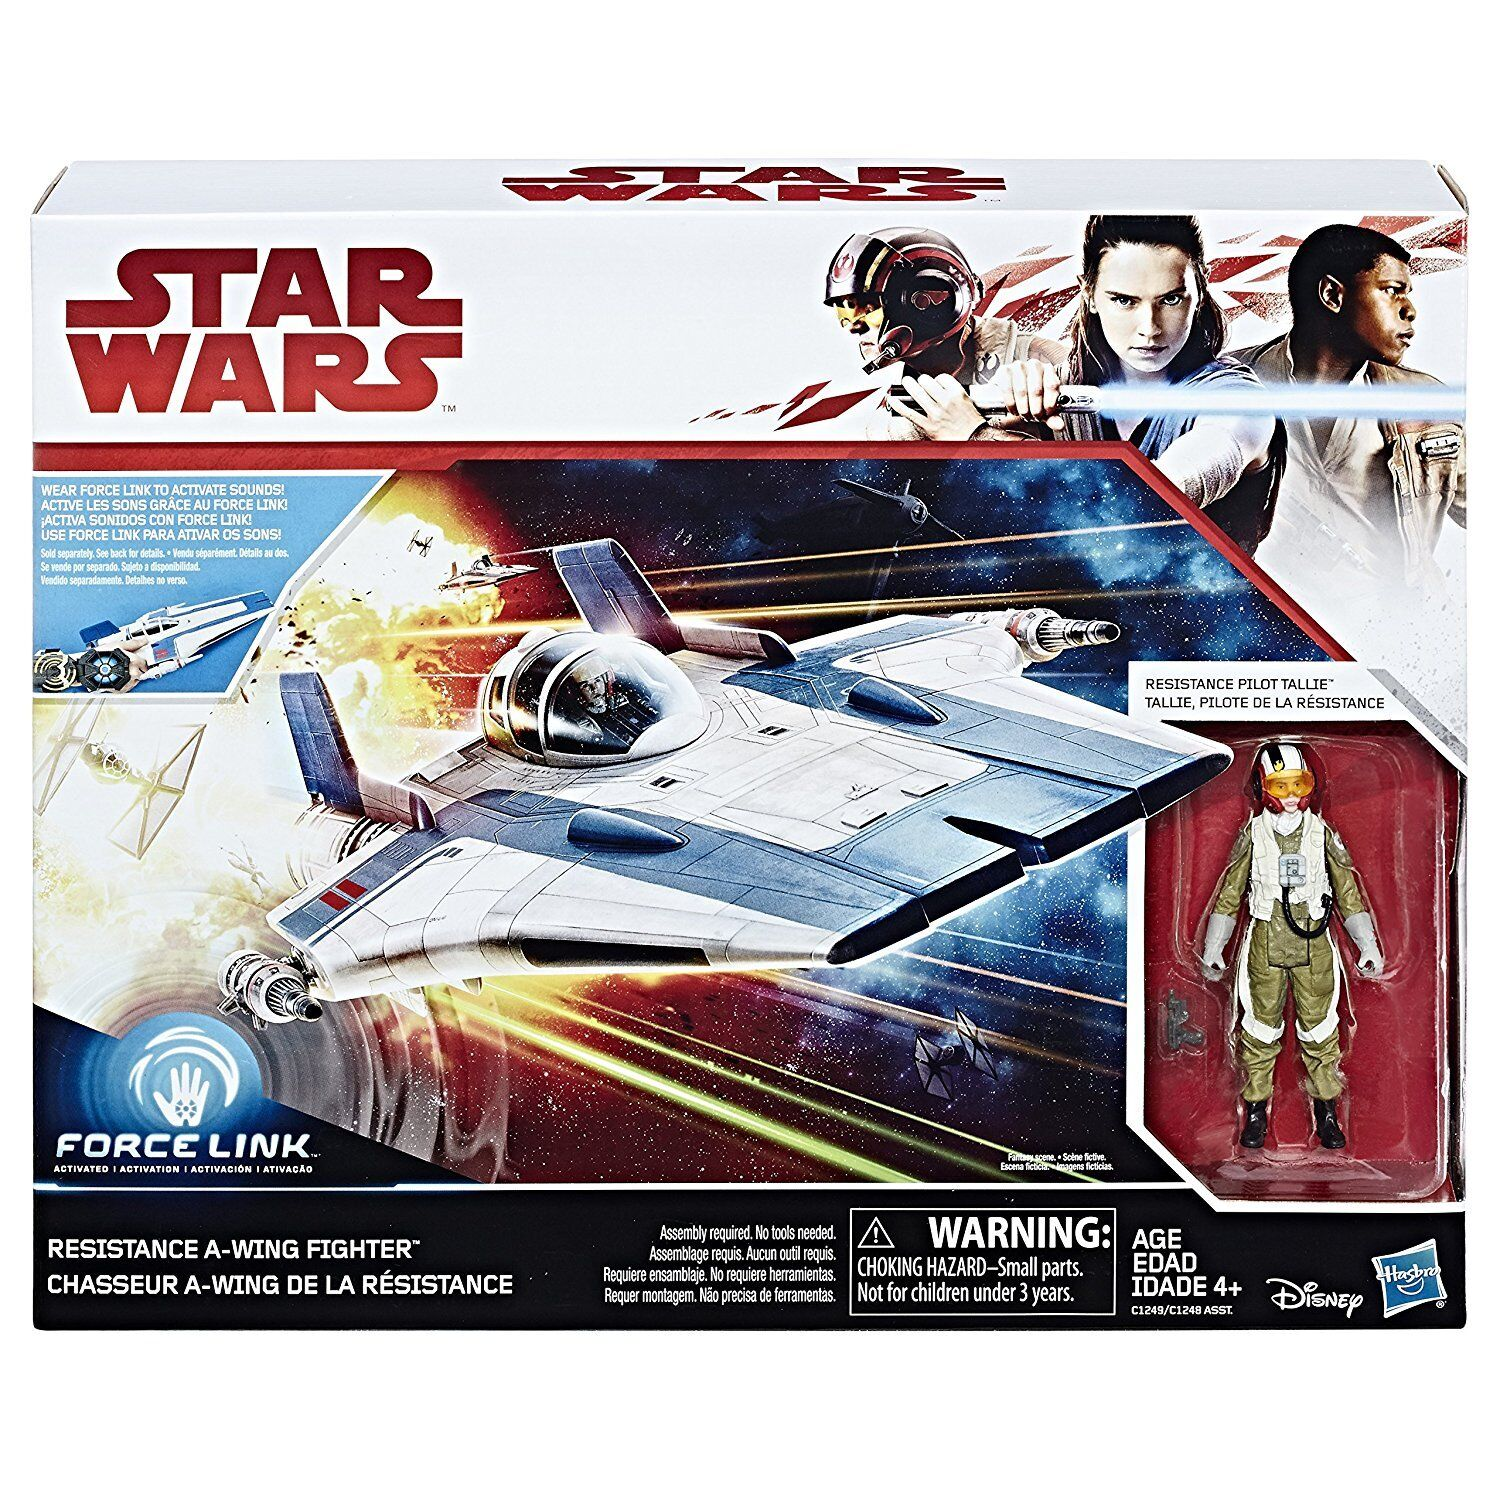 STAR WARS FORCE LINK RESISTANCE A-WING FIGHTER AND RESISTANCE PILOT TALLIE